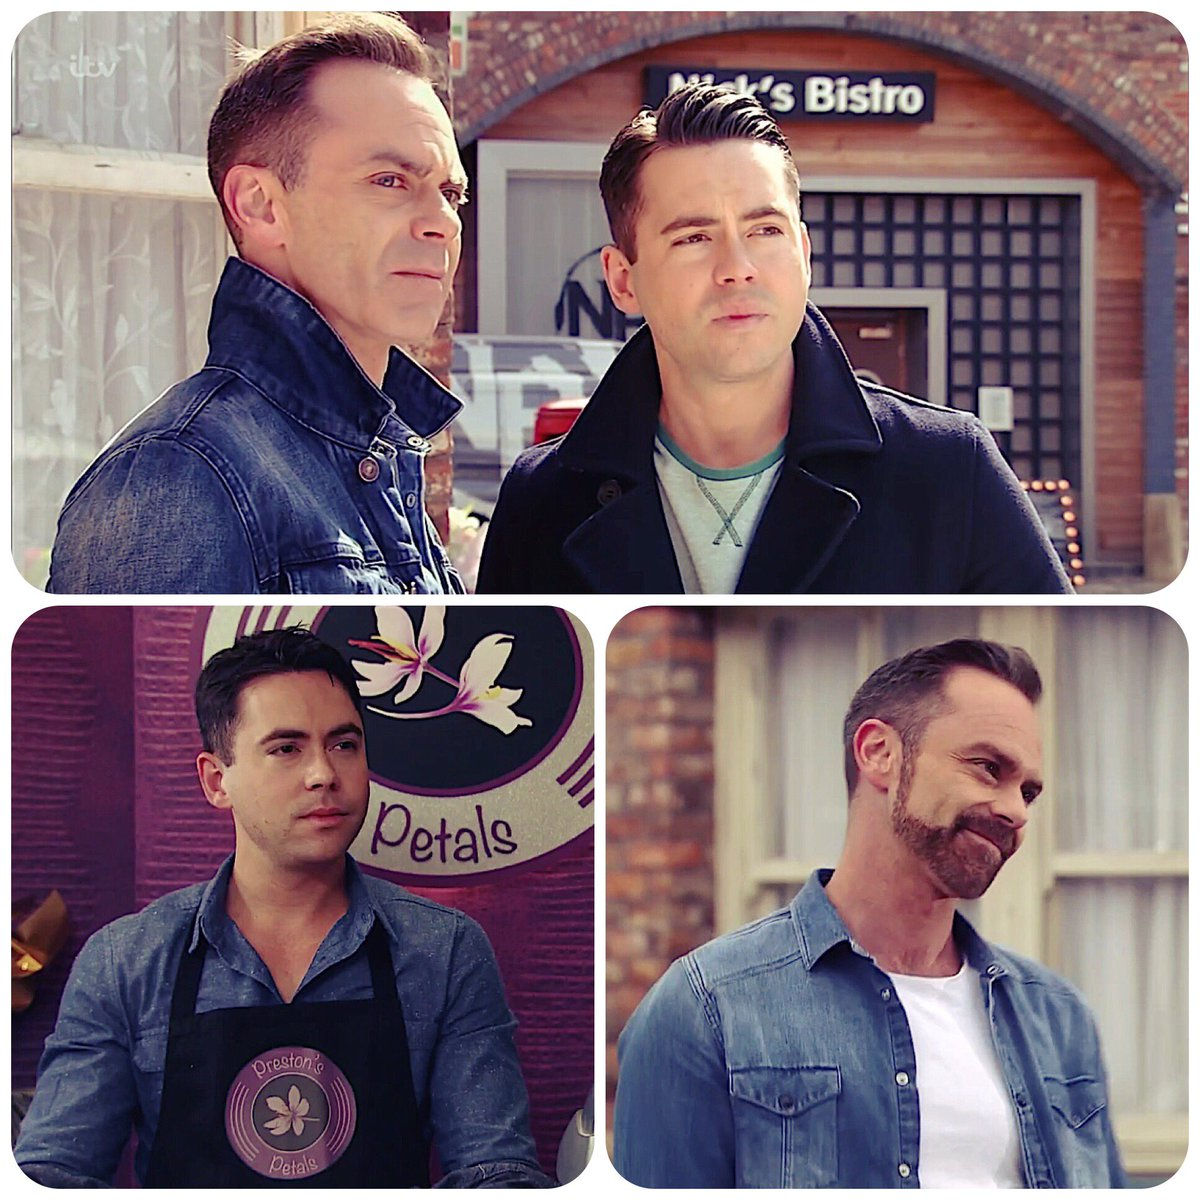 Blessing your timeline with some denim'd #Tilly....also #corrie ...can we get Todd's denim shirt back into circulation please   #Billy <br>http://pic.twitter.com/KHsEHMUoHq